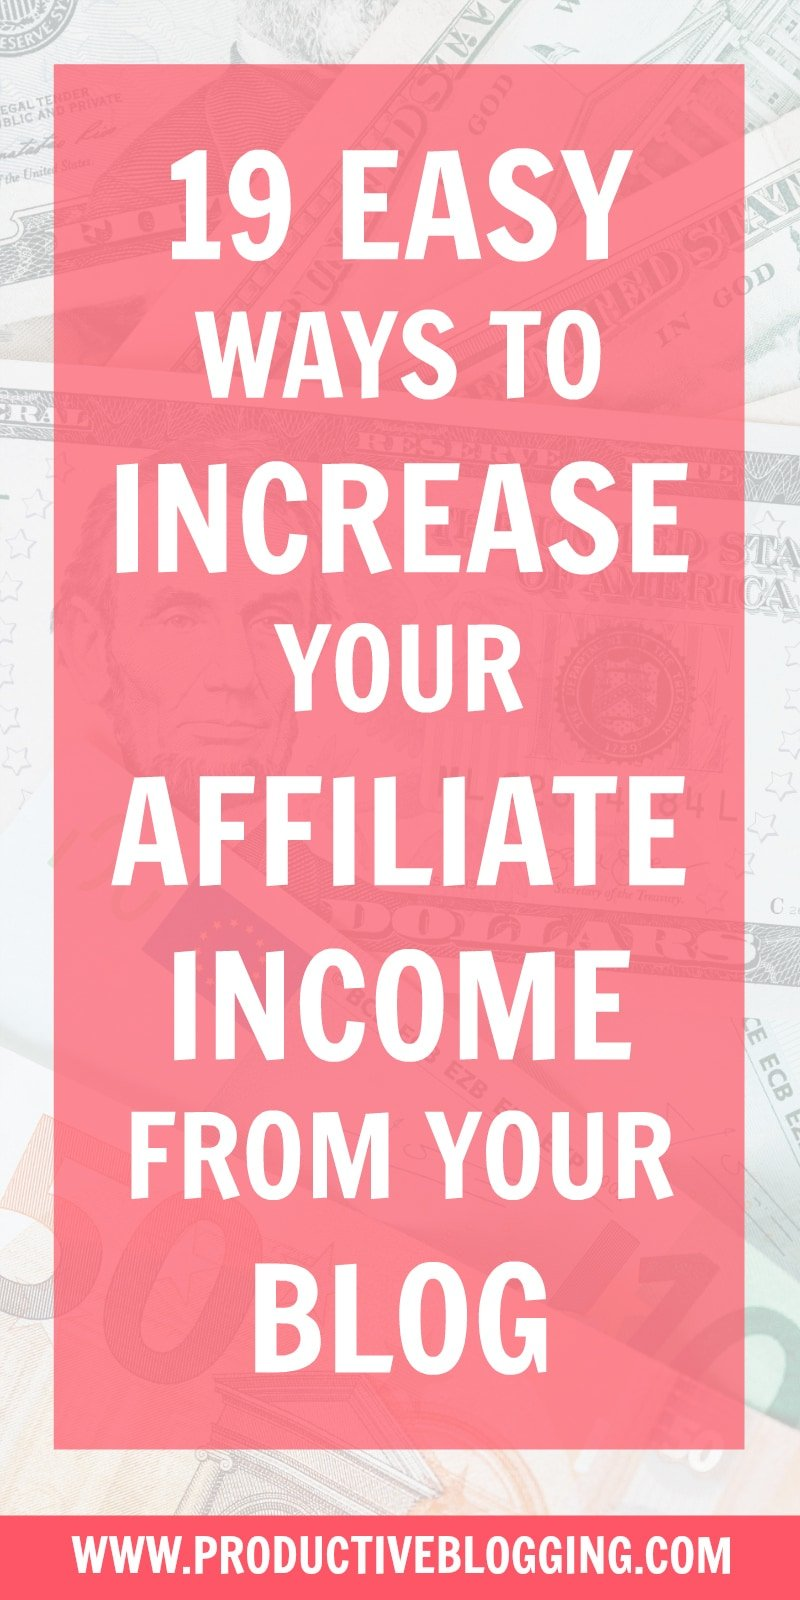 Love the sound of earning passive income from affiliate links on your blog, but can't seem to make it work on YOUR blog? Here are 19 easy ways to increase your affiliate income! #affiliatelinks #affiliatemarketing #affiliatemarketingforbloggers #increaseaffiliateincome #makemoneyblogging #monetizeyourblog #bloggersofIG #professionalblogger #bloggingismyjob #solopreneur #mompreneur #fempreneur #bloggingbiz #bloggingtips #productivitytips #productivebloggingcommunity #productiveblogging